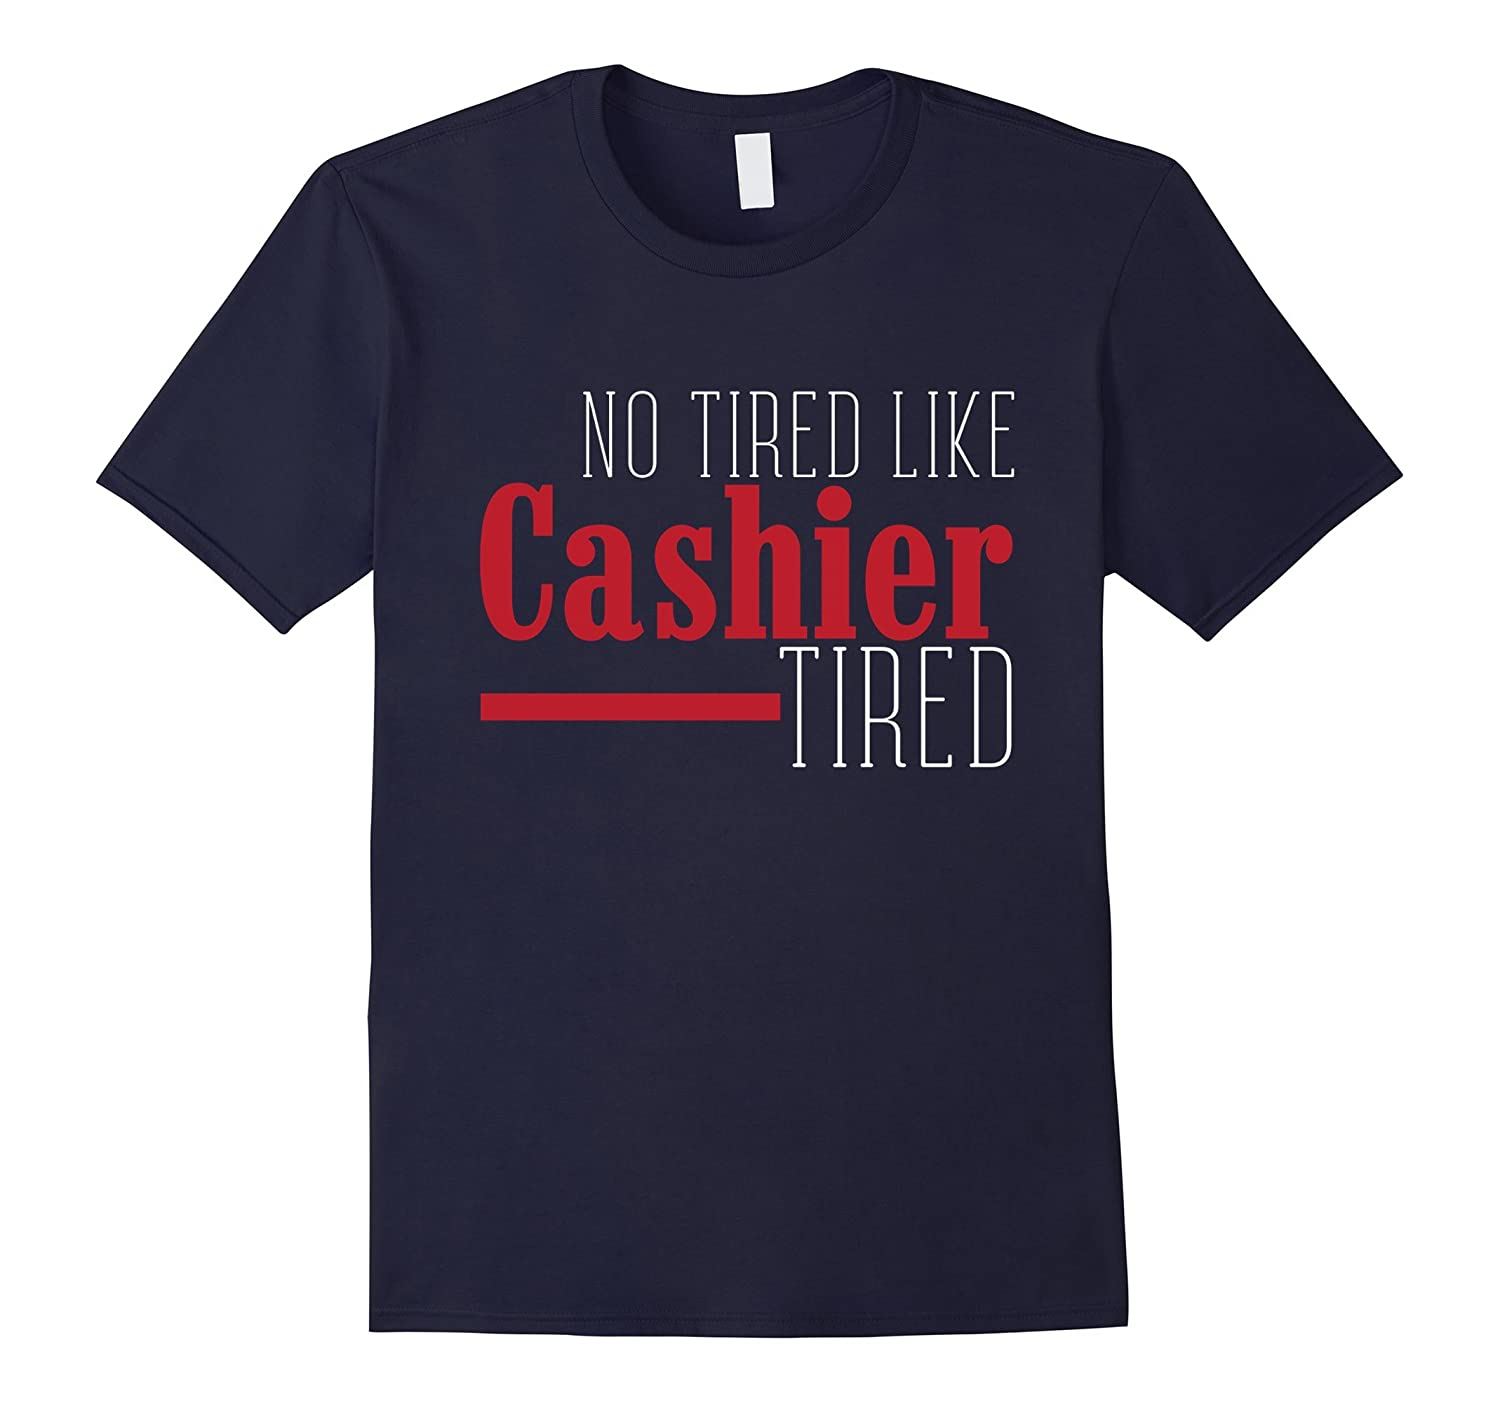 No Tired Like Cashier Tired T-shirt-TD